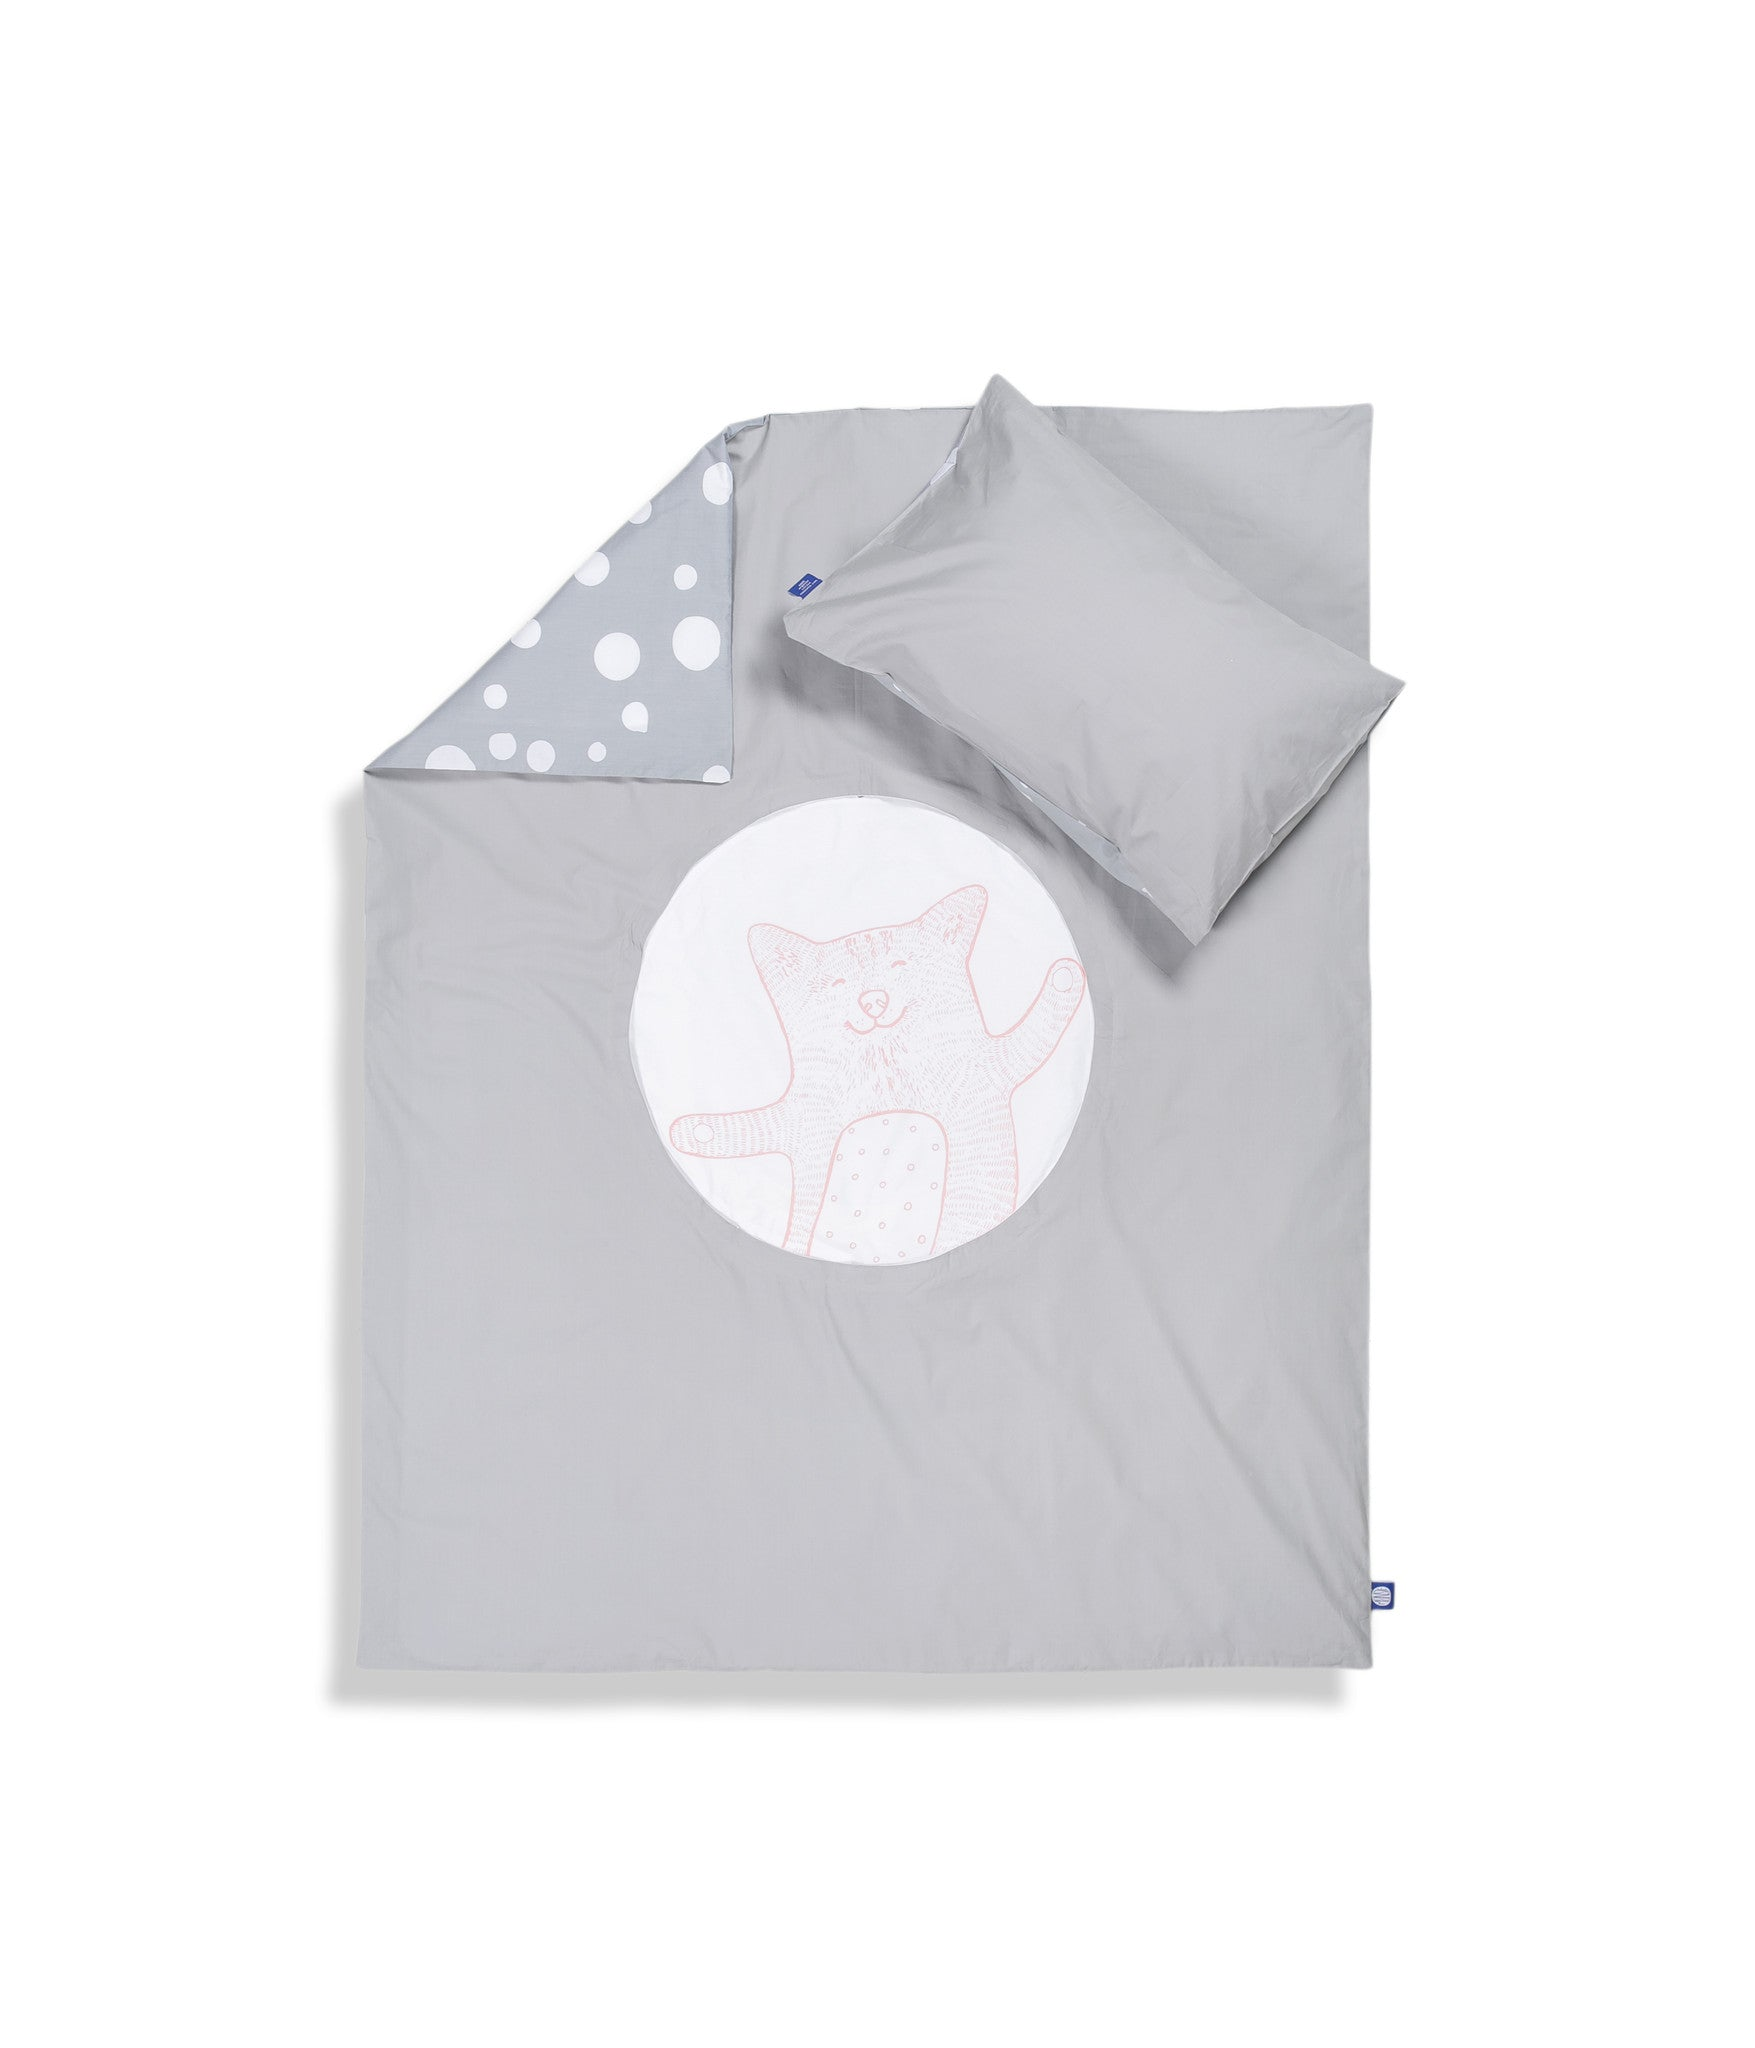 Organic cotton cot bed set. Baby bedding. Grey pillow case and grey duvet cover with cat. Dotted pattern bed linen. Customised bedding.